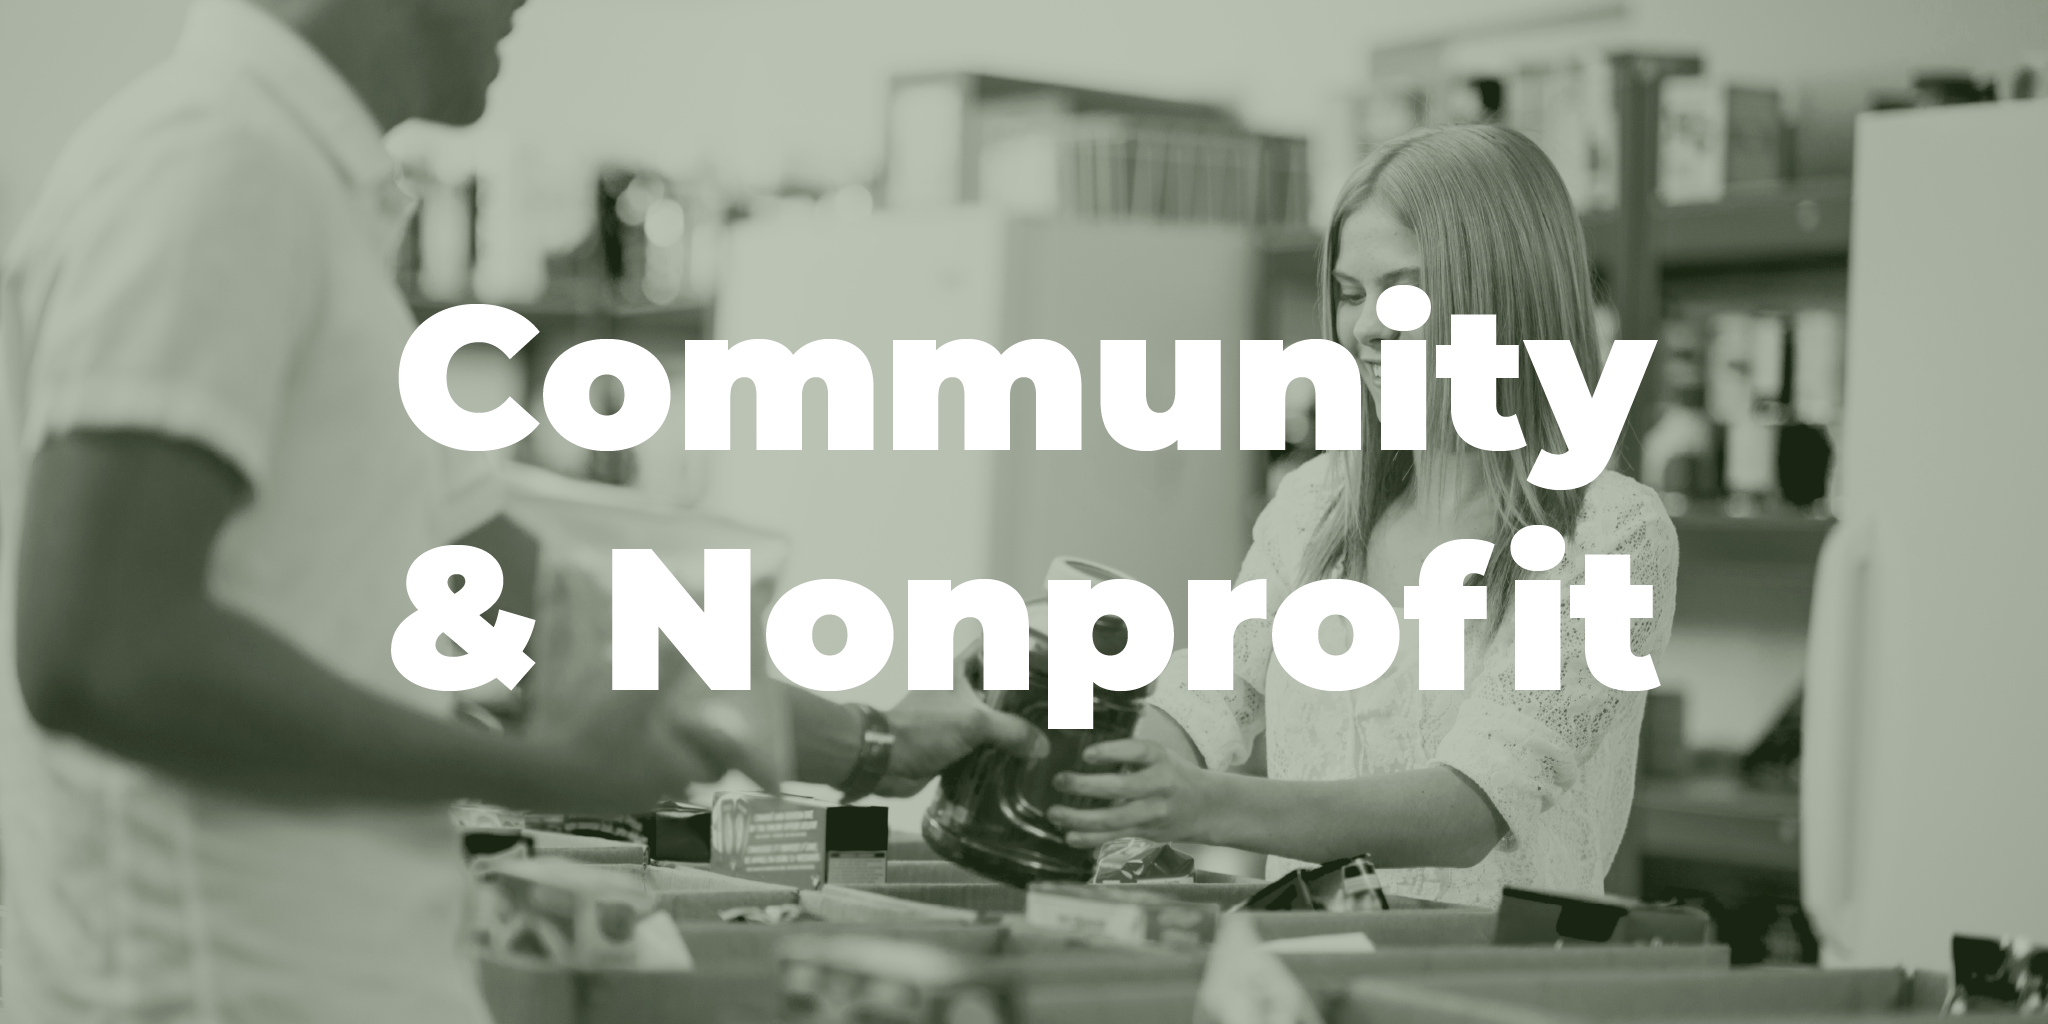 Community & Nonprofit